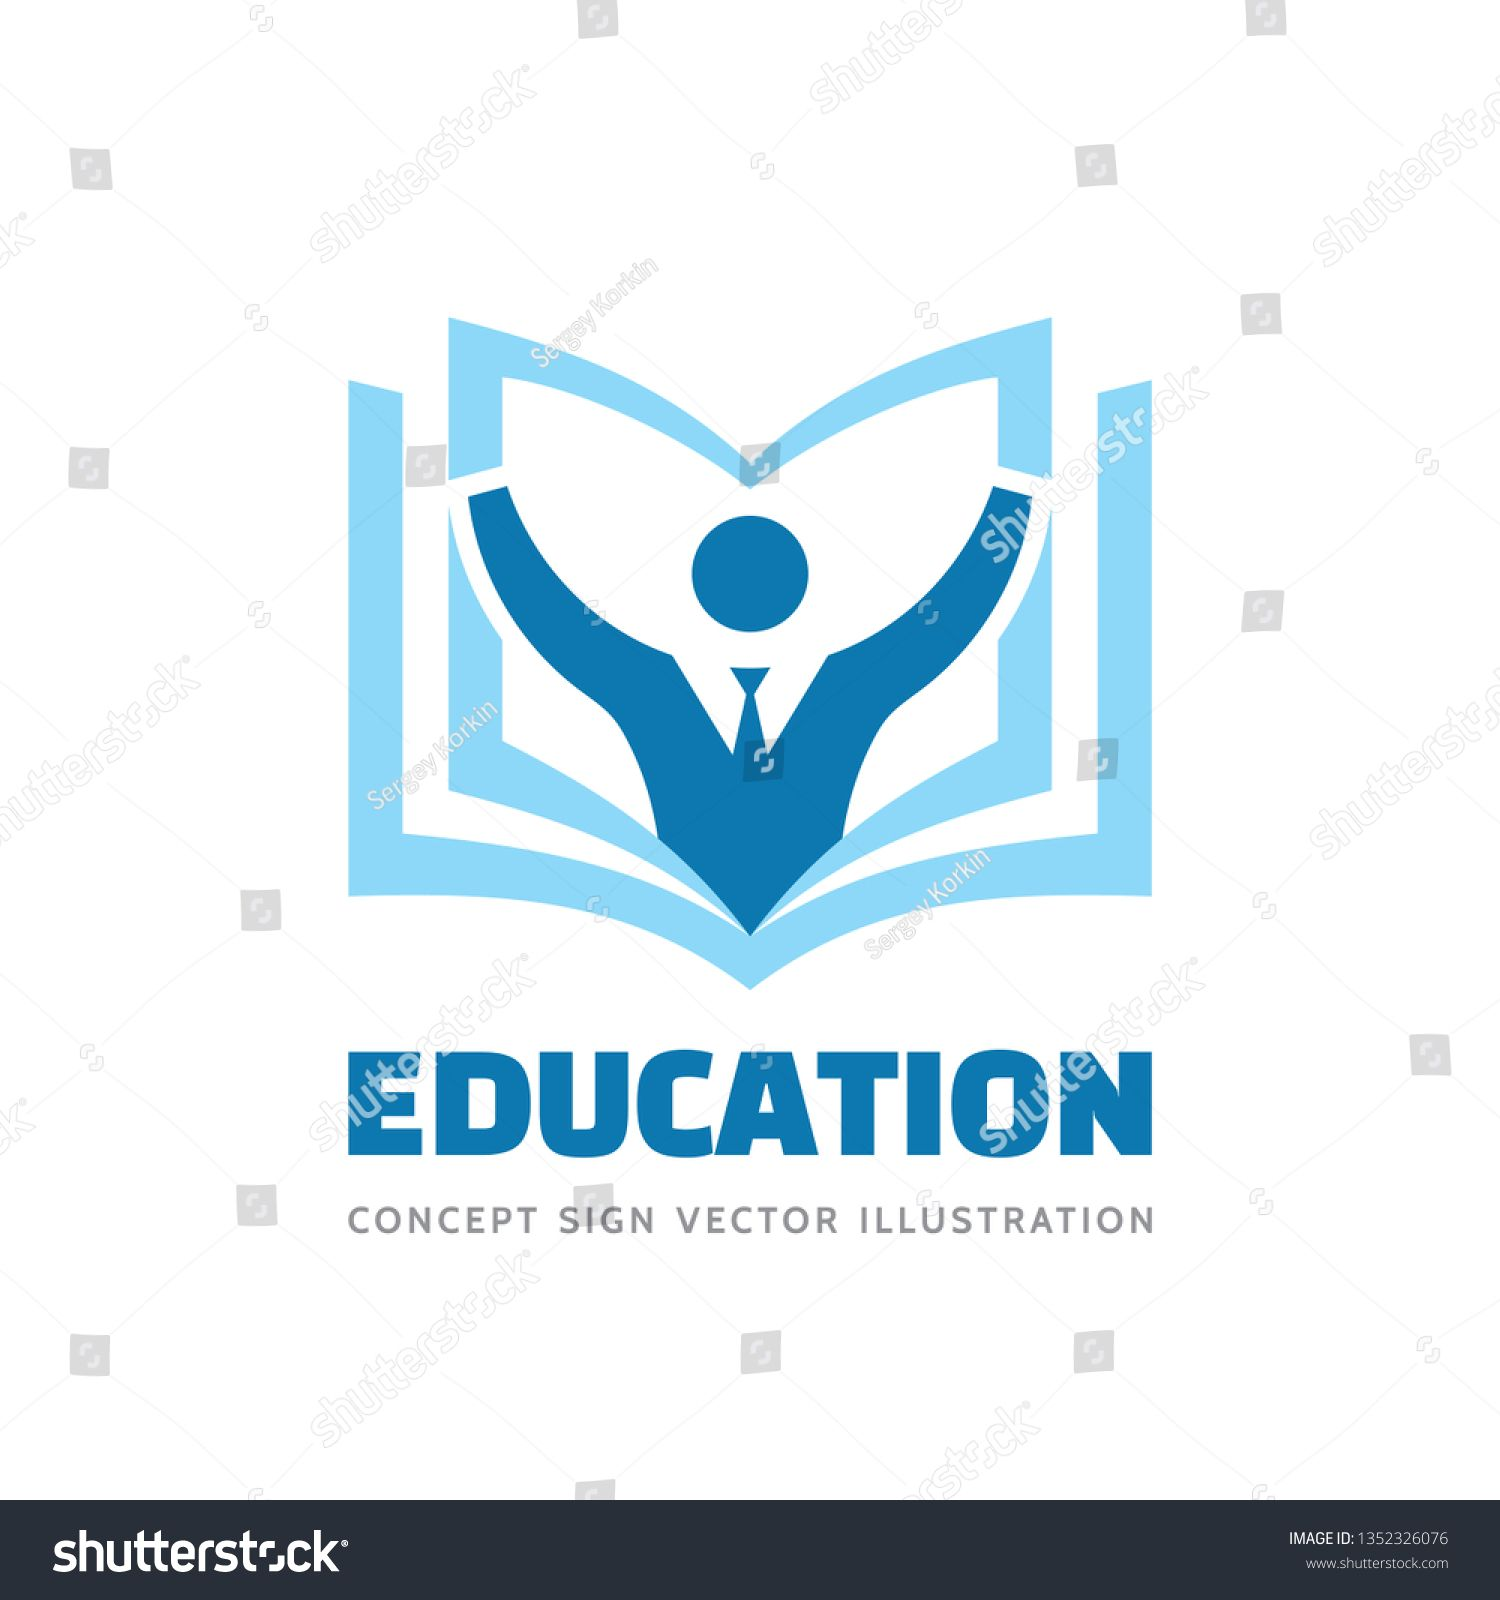 Education Vector Logo Template Concept Illustration In Flat